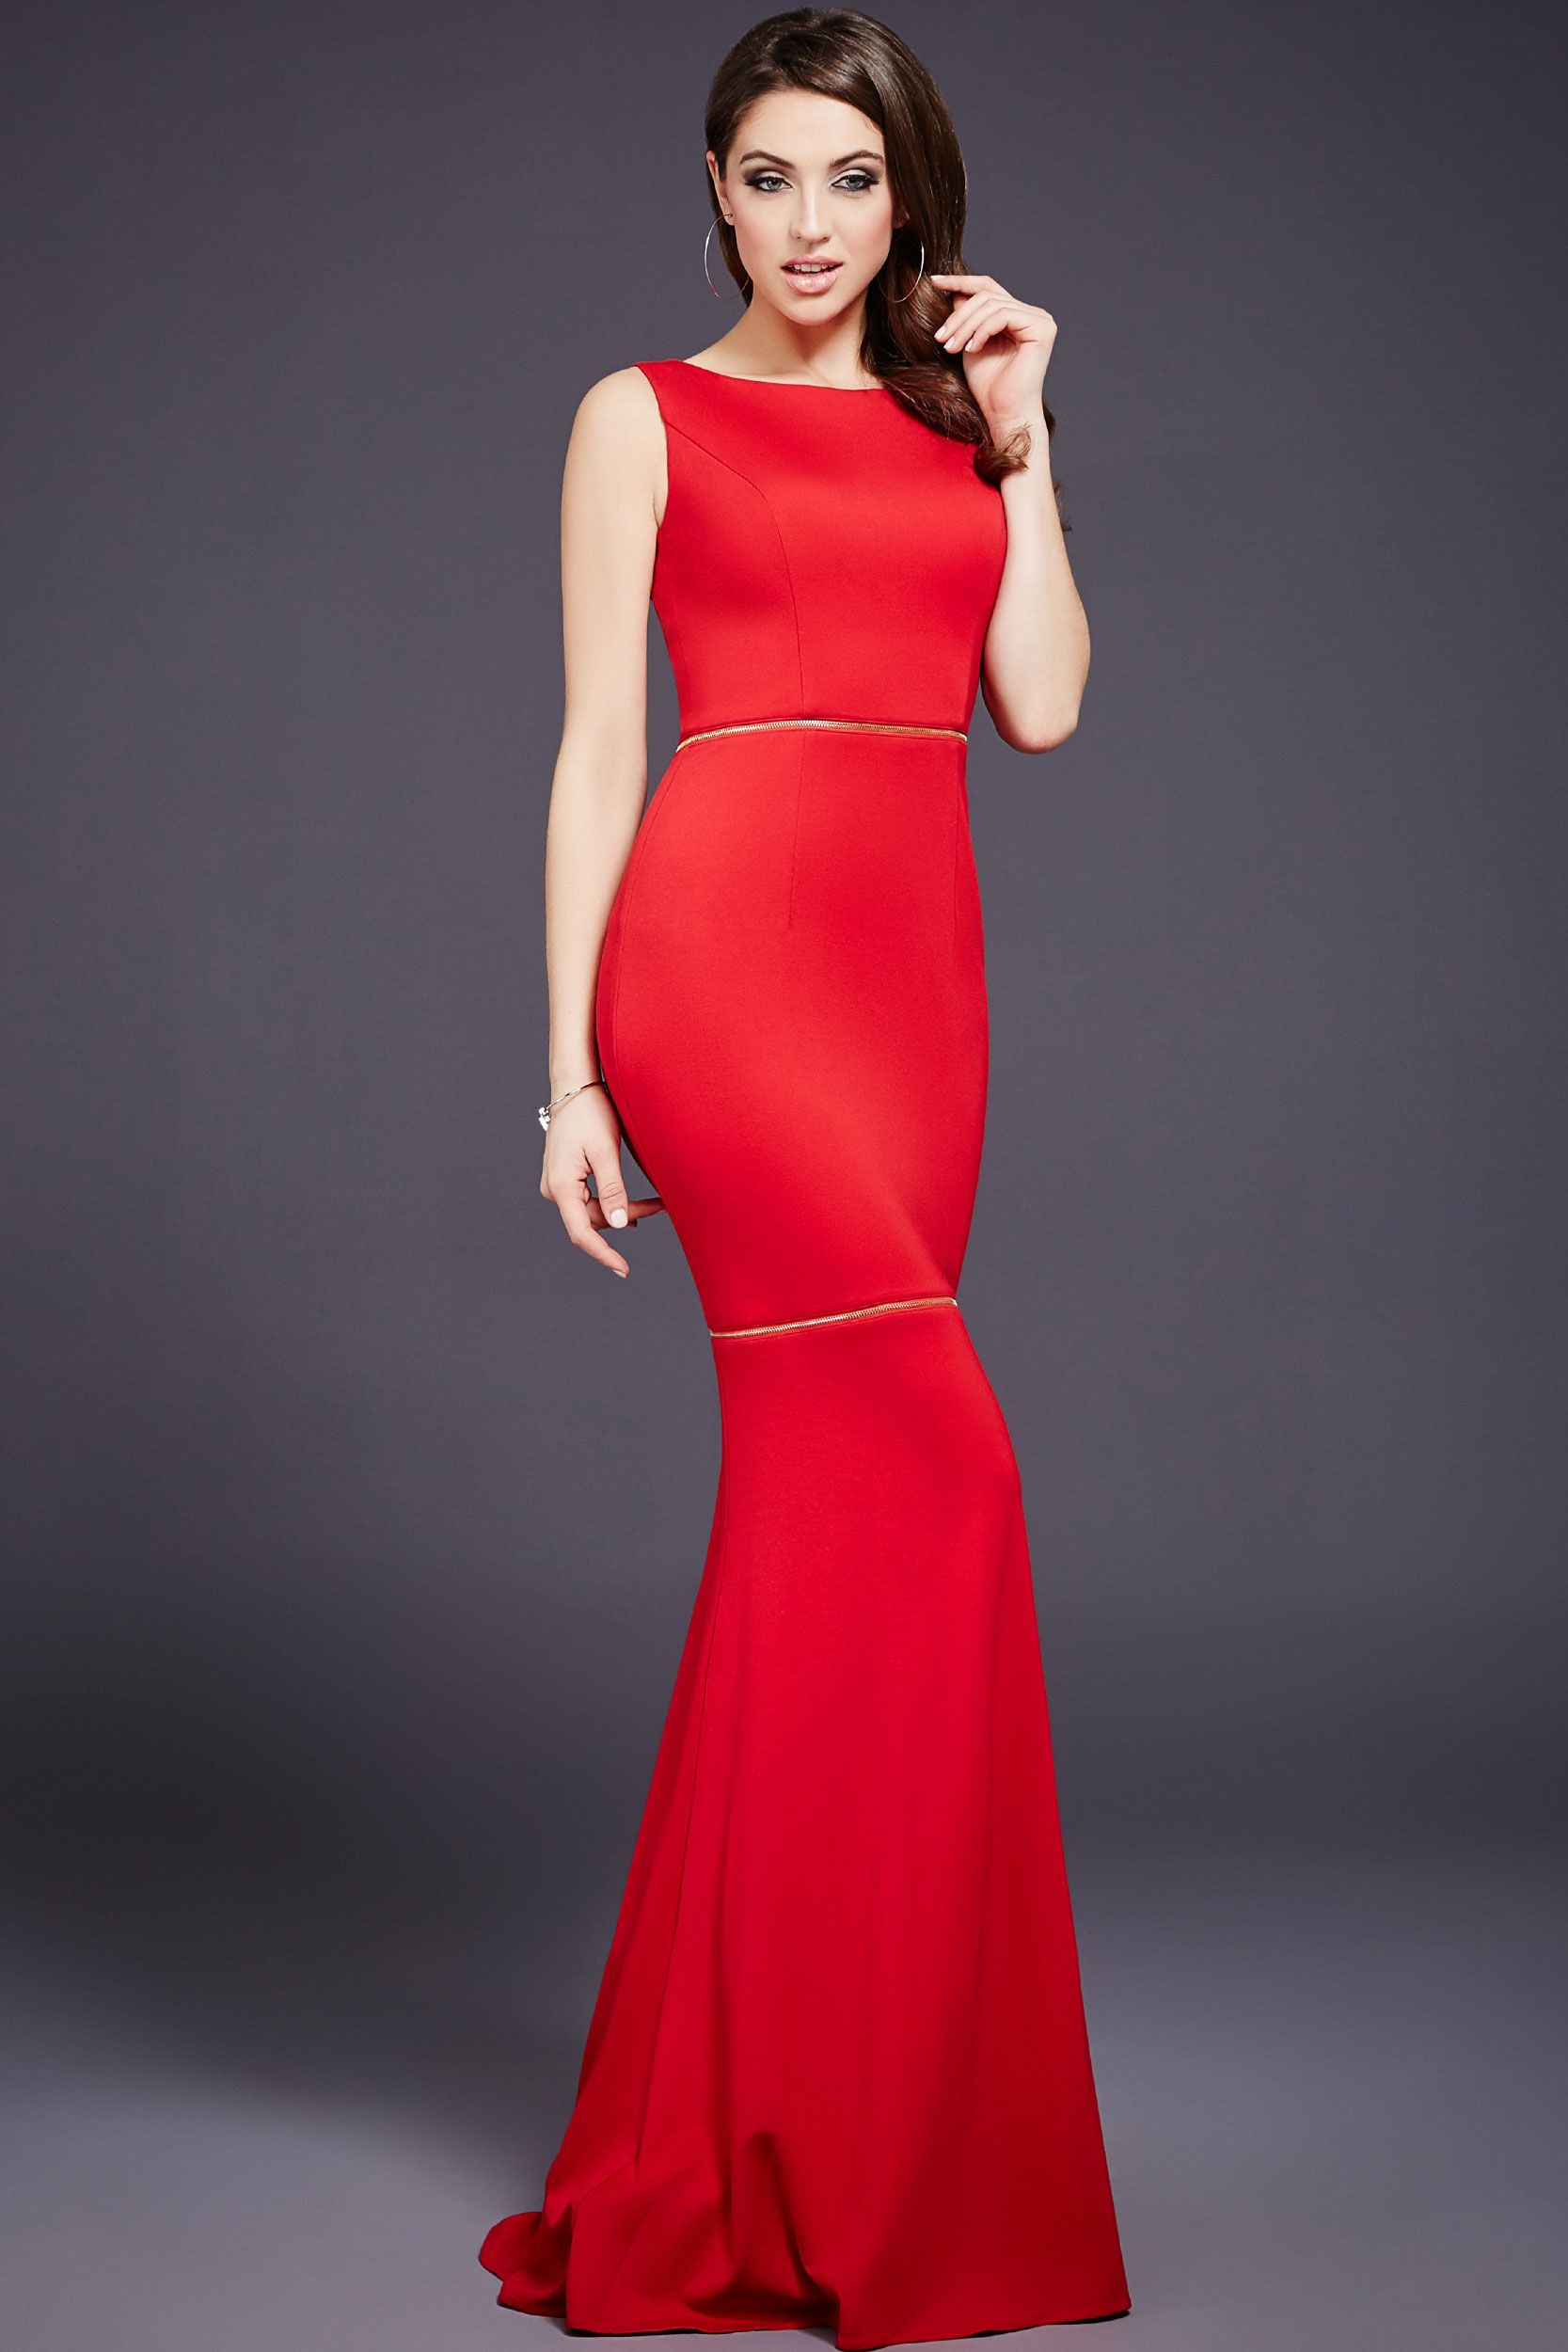 Red Sleeveless Fitted Prom Dress 36599 | fancy | Pinterest